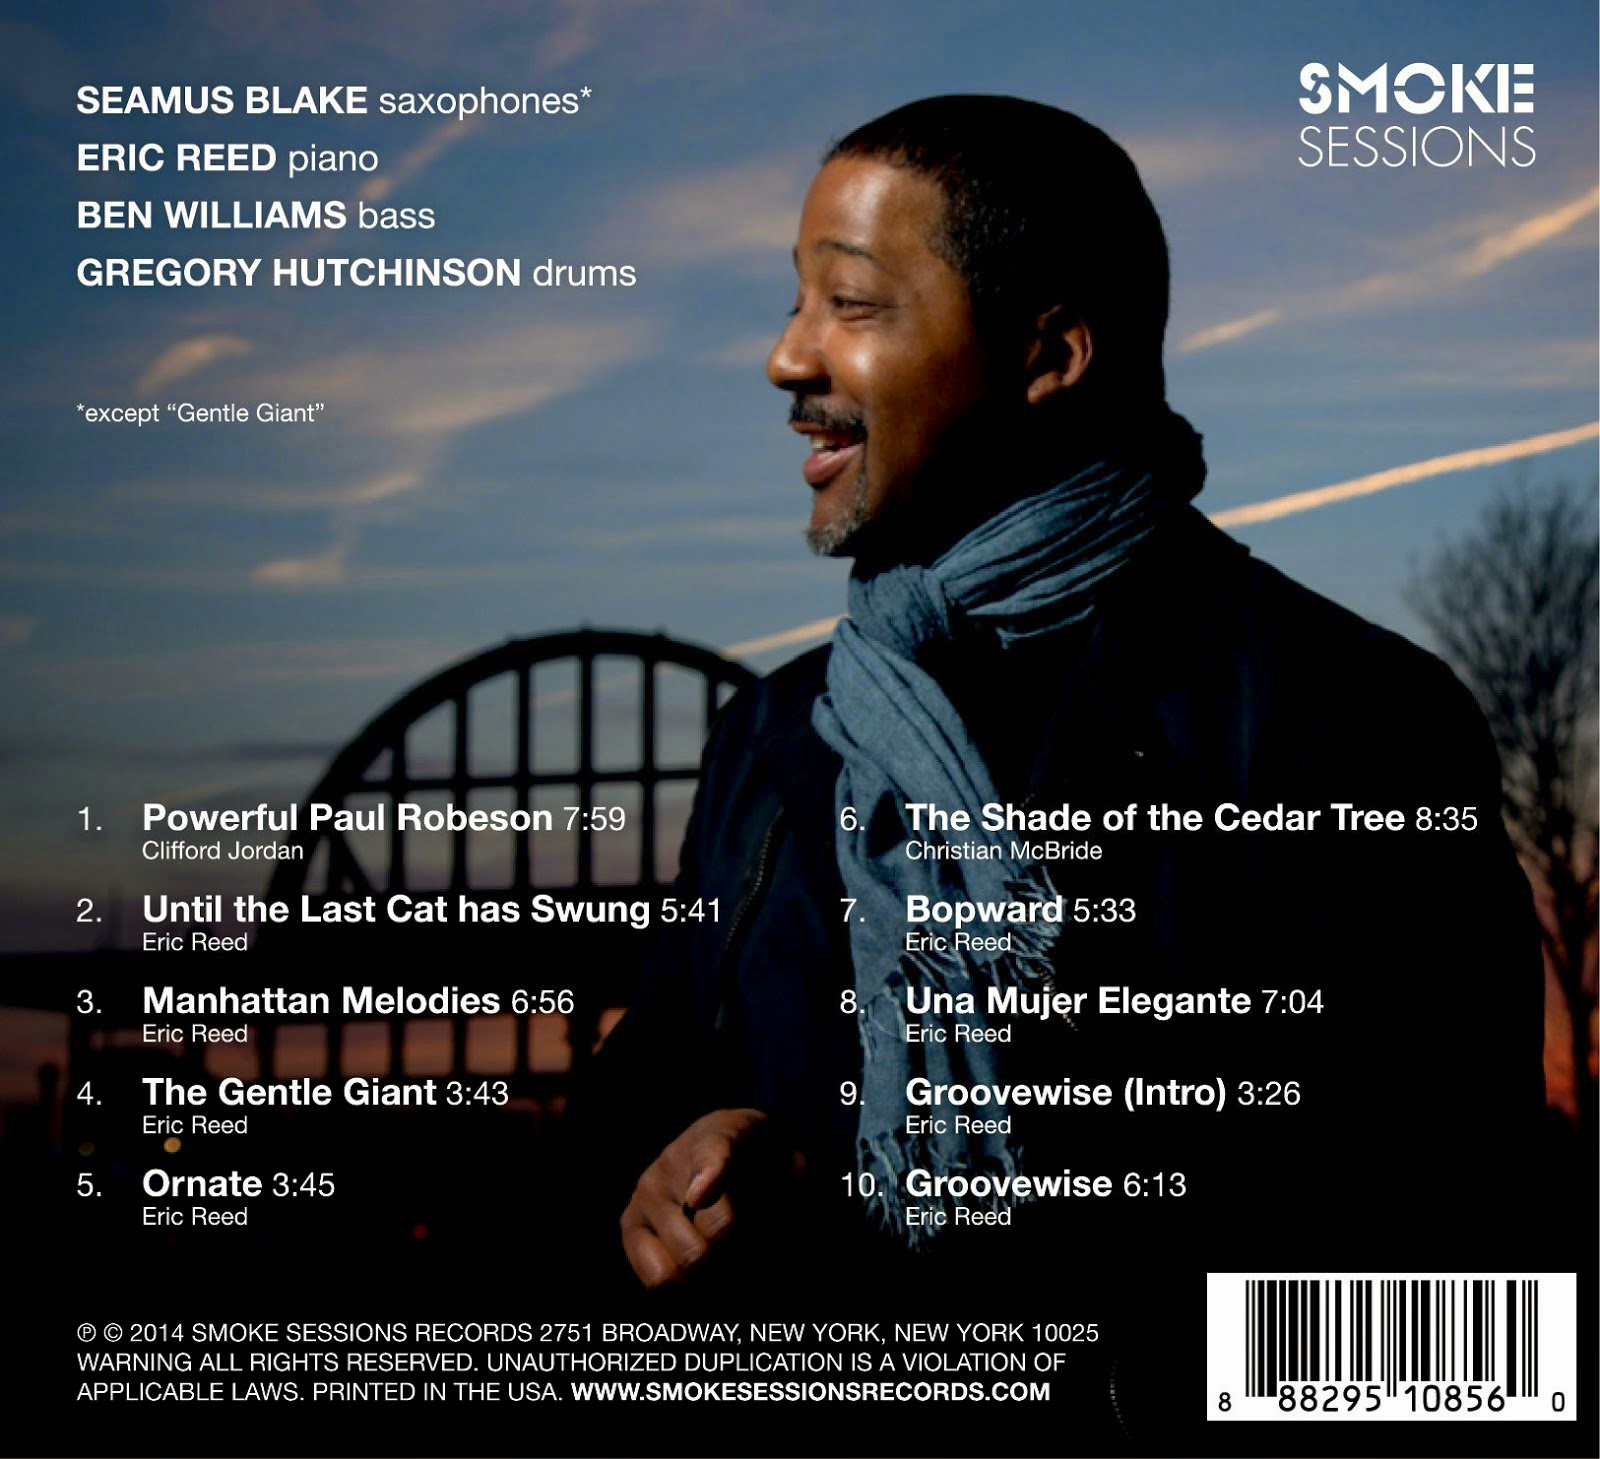 ERIC REED: GROOVEWISE